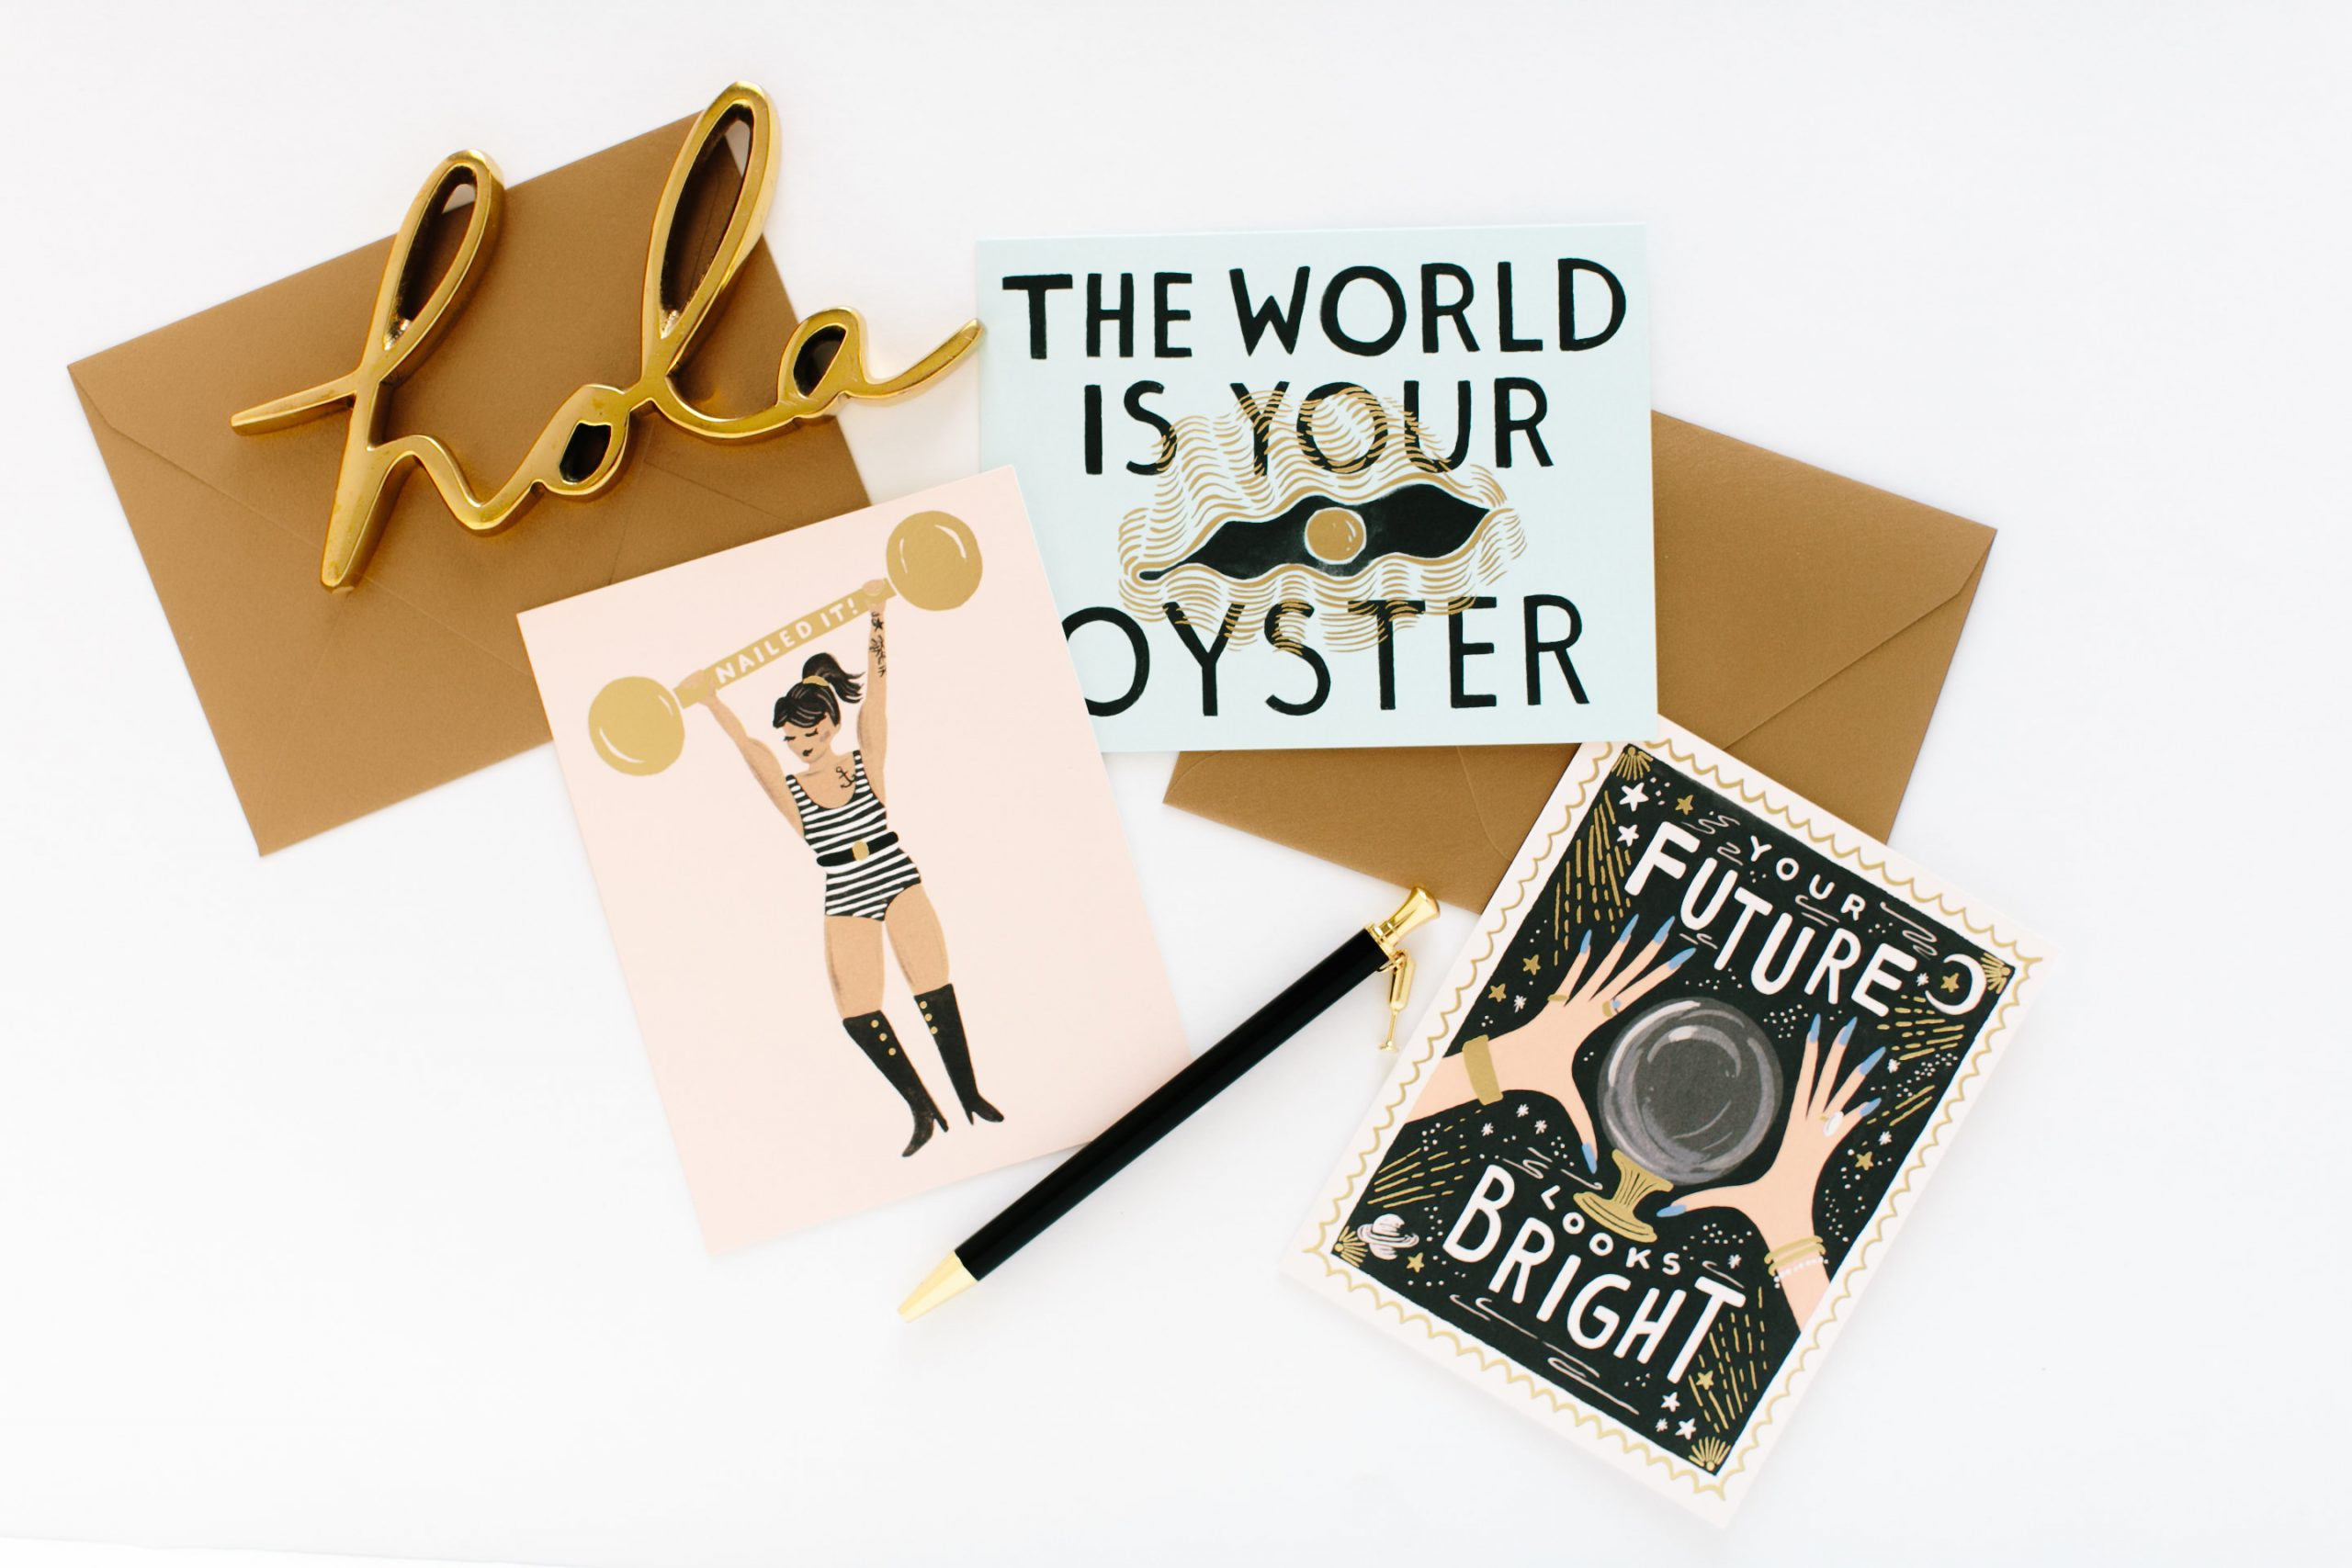 career masterclass with image of world is your oyster